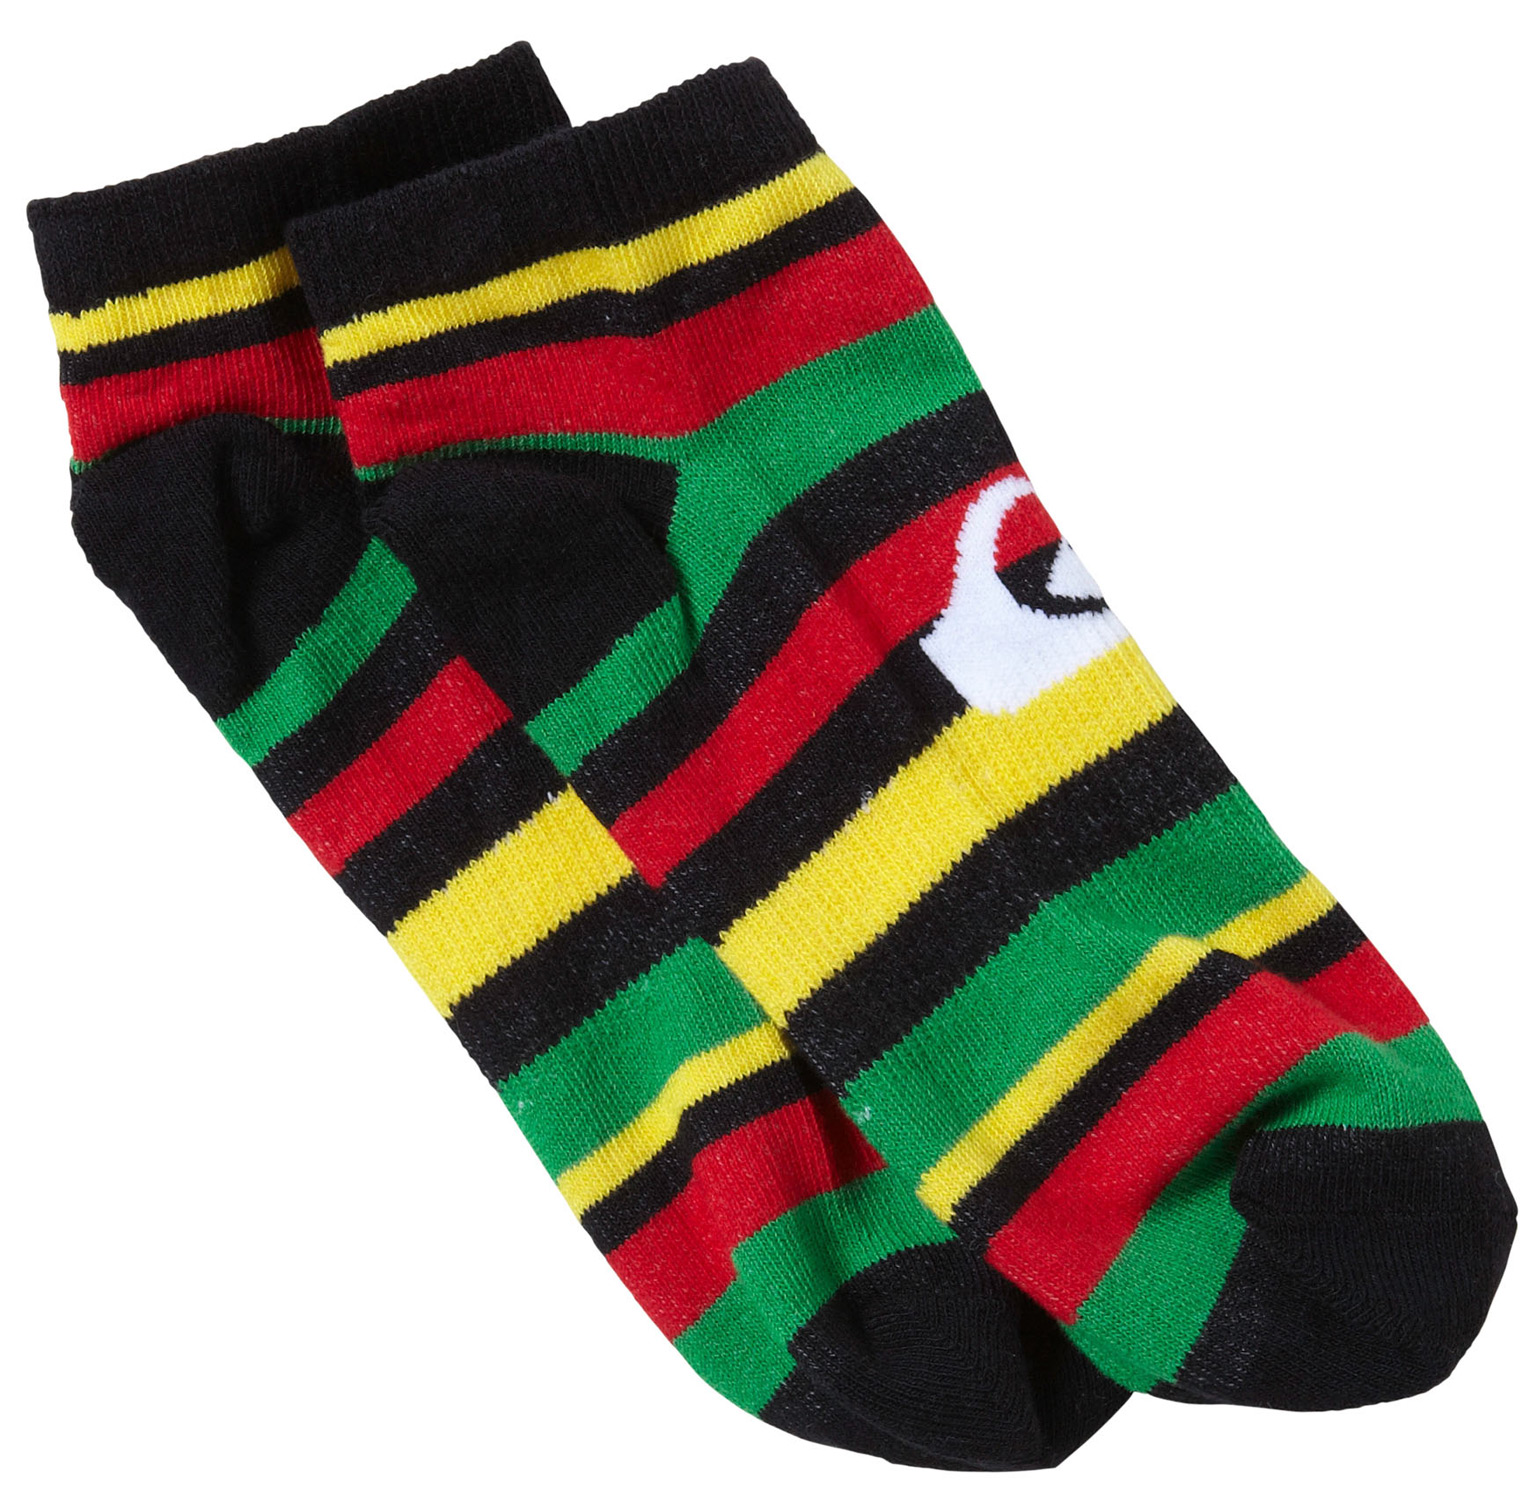 Surf Key Features of the Quiksilver Fixed Socks: 80% cotton, 10% n ylon, 10% sp andex Assorted art ankle sock with mountain wave logo - $7.00